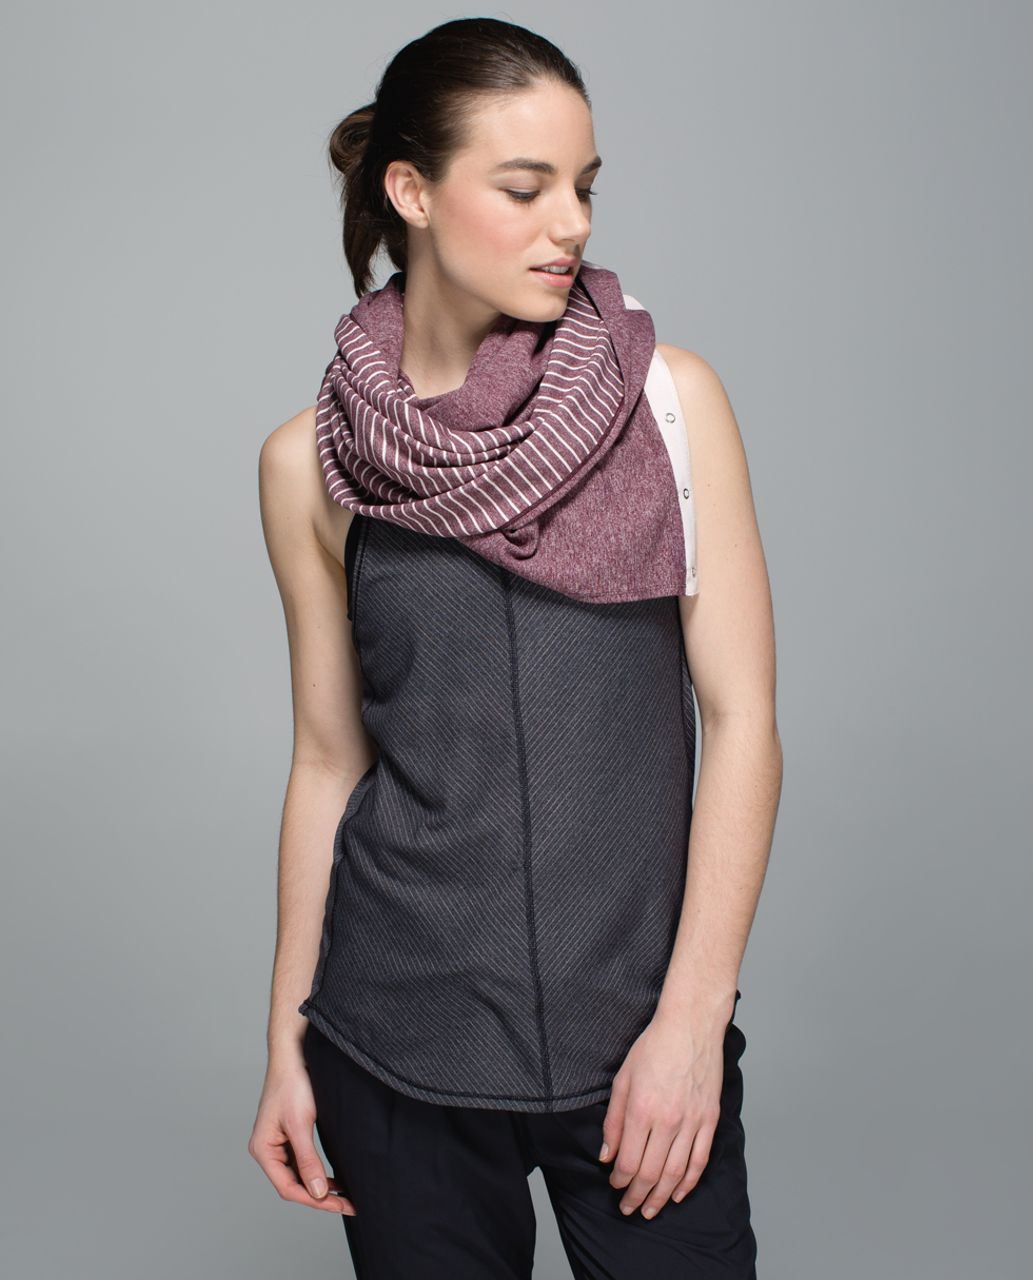 Lululemon Vinyasa Scarf *Rulu - Parallel Stripe Butter Pink Heathered Bordeaux Drama / Heathered Bordeaux Drama